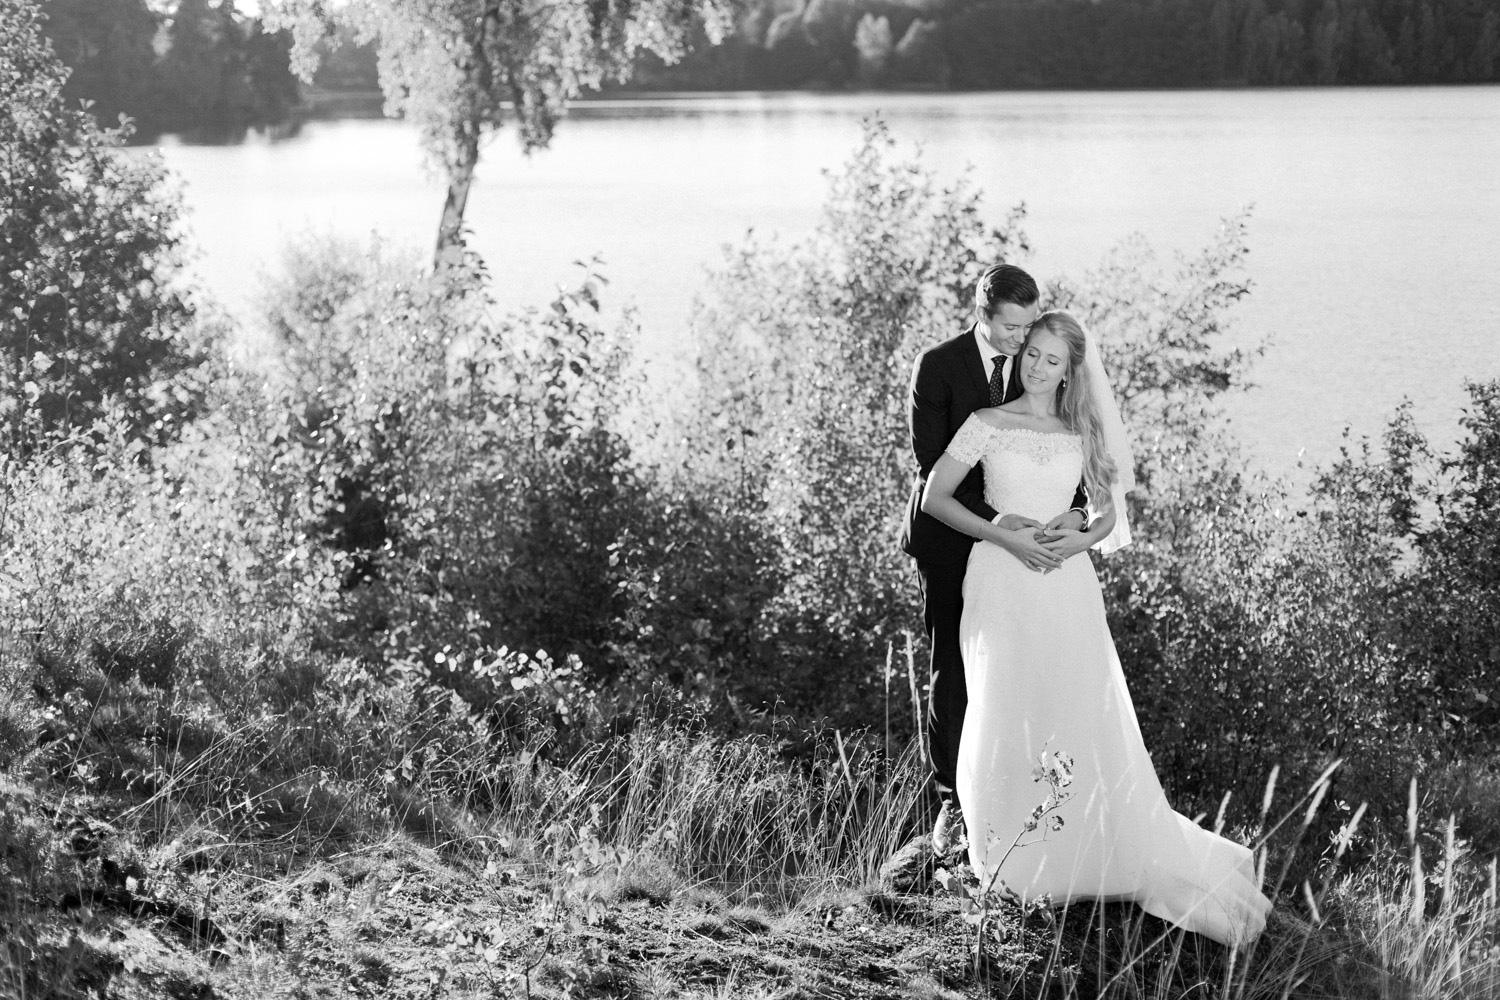 066-sweden-vidbynäs-wedding-photographer-bröllopsfotograf.jpg